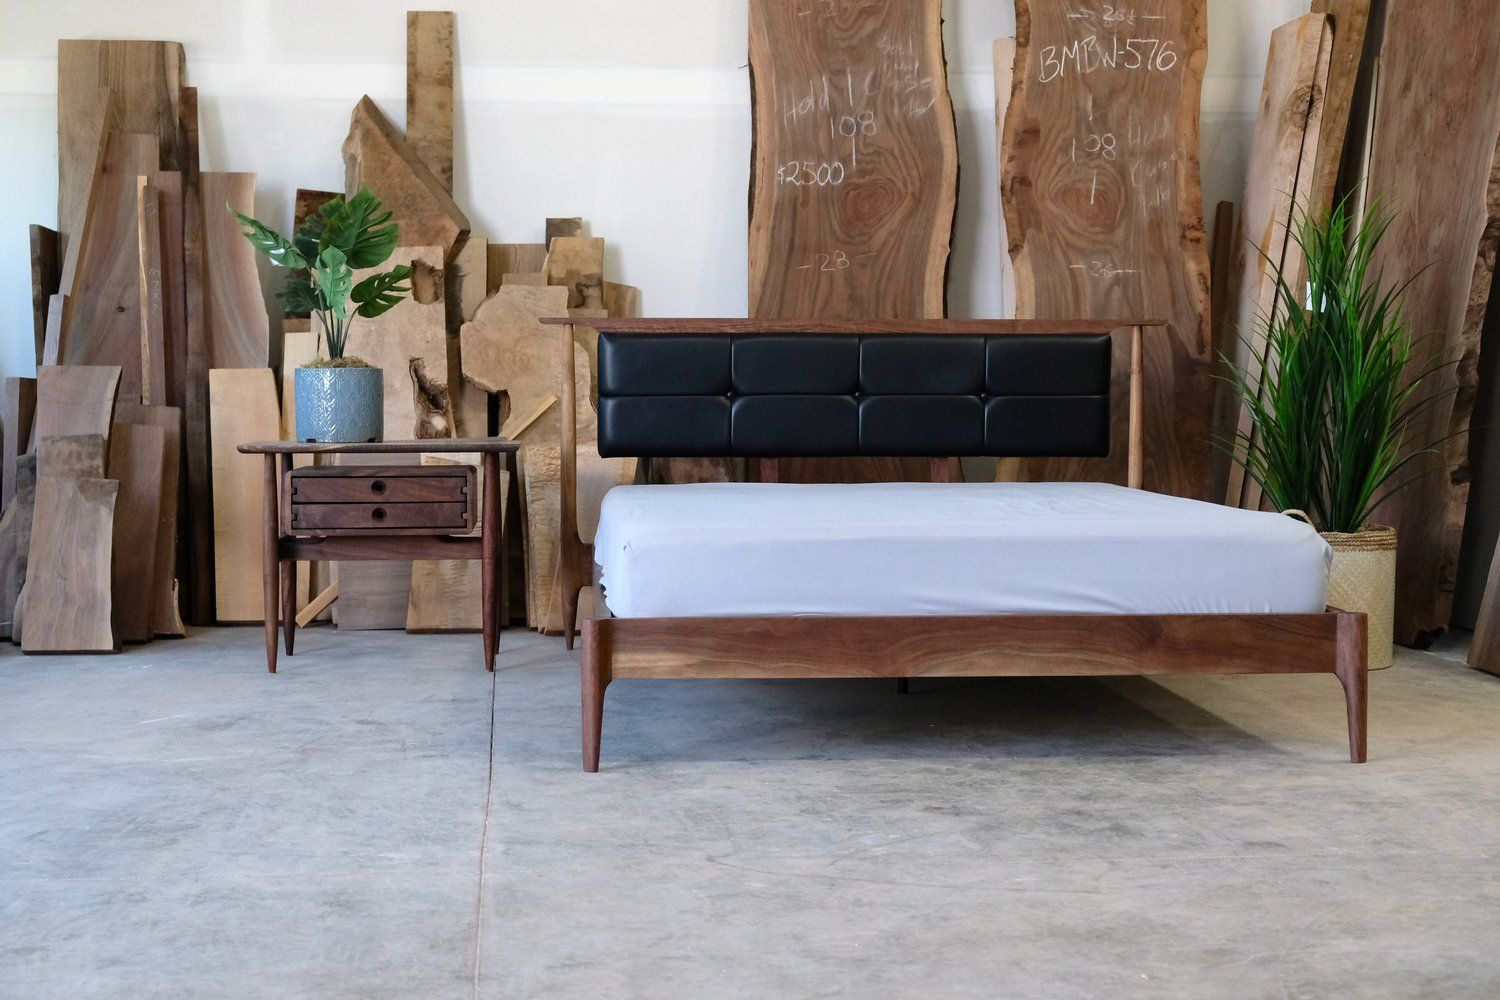 Furniture — Beauty & Bread Bed frame and